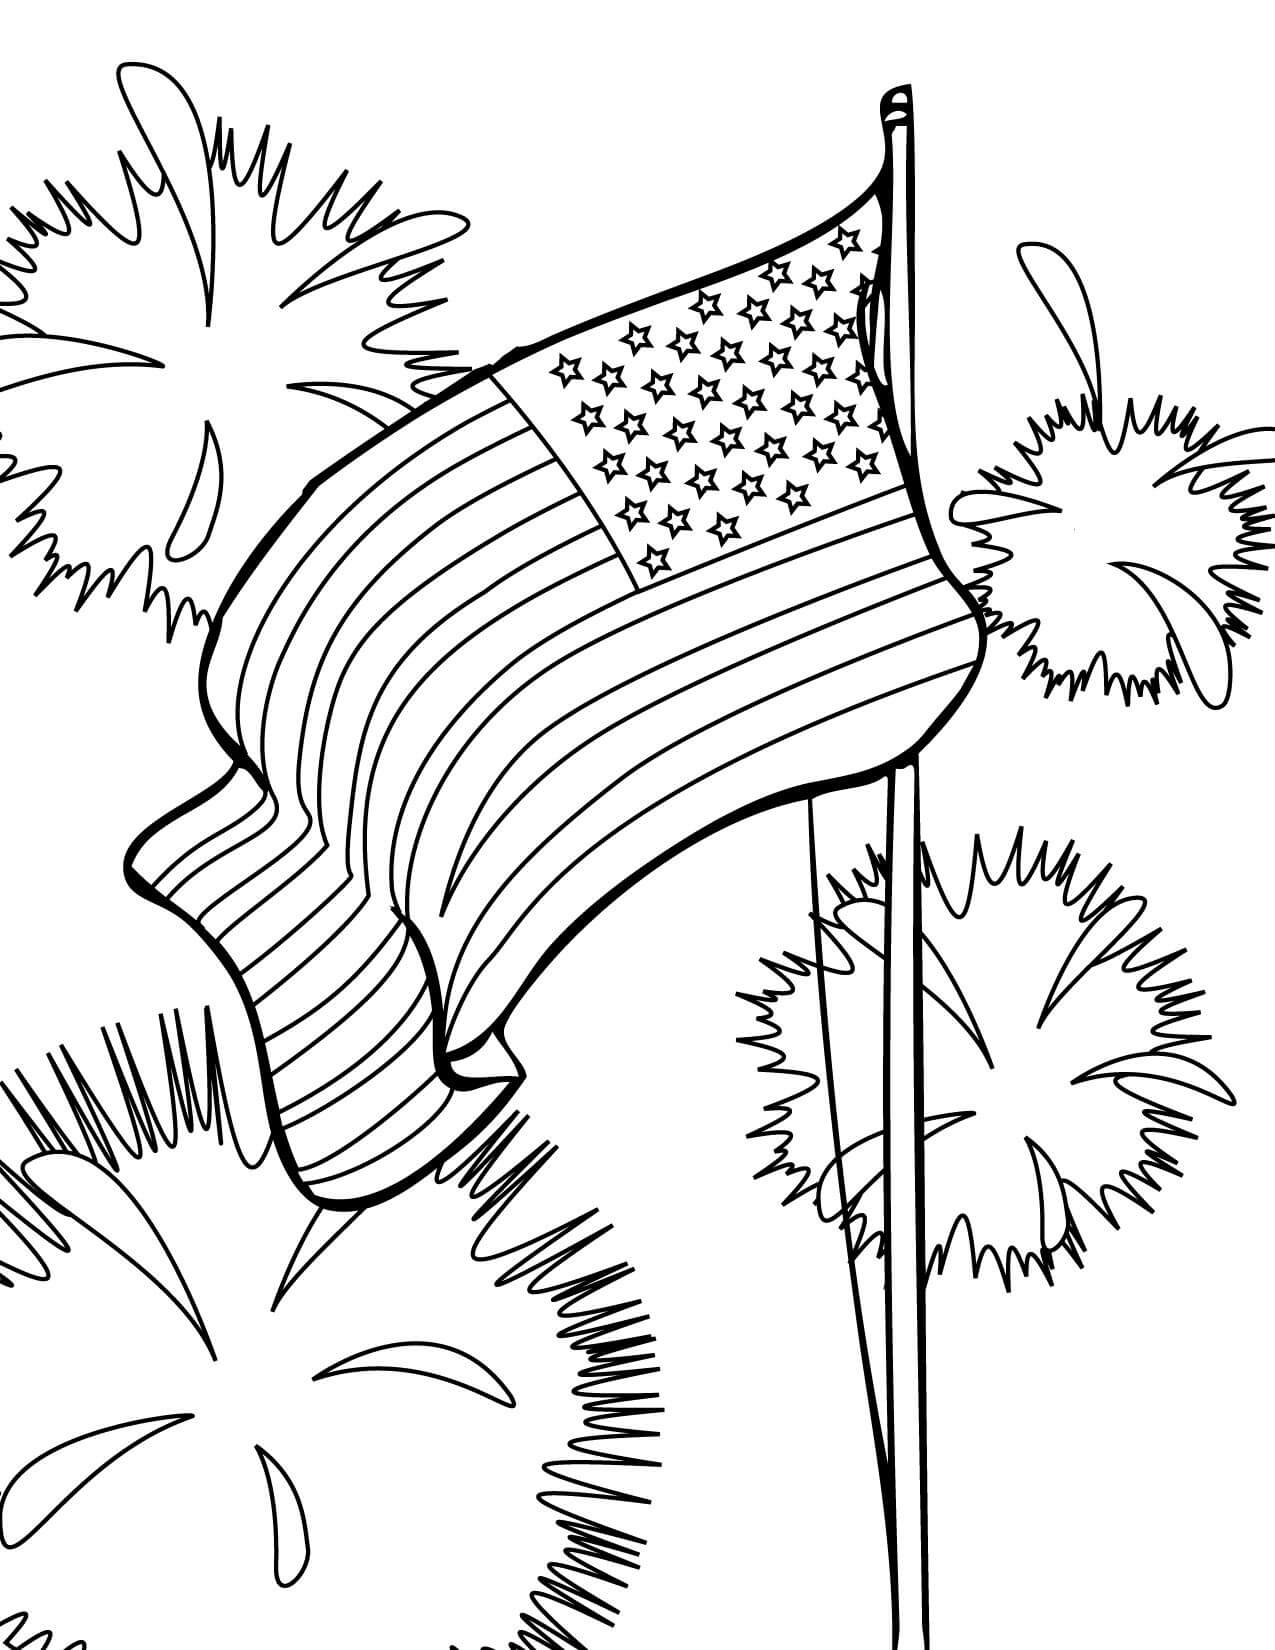 25 Free Printable Memorial Day Coloring Pages